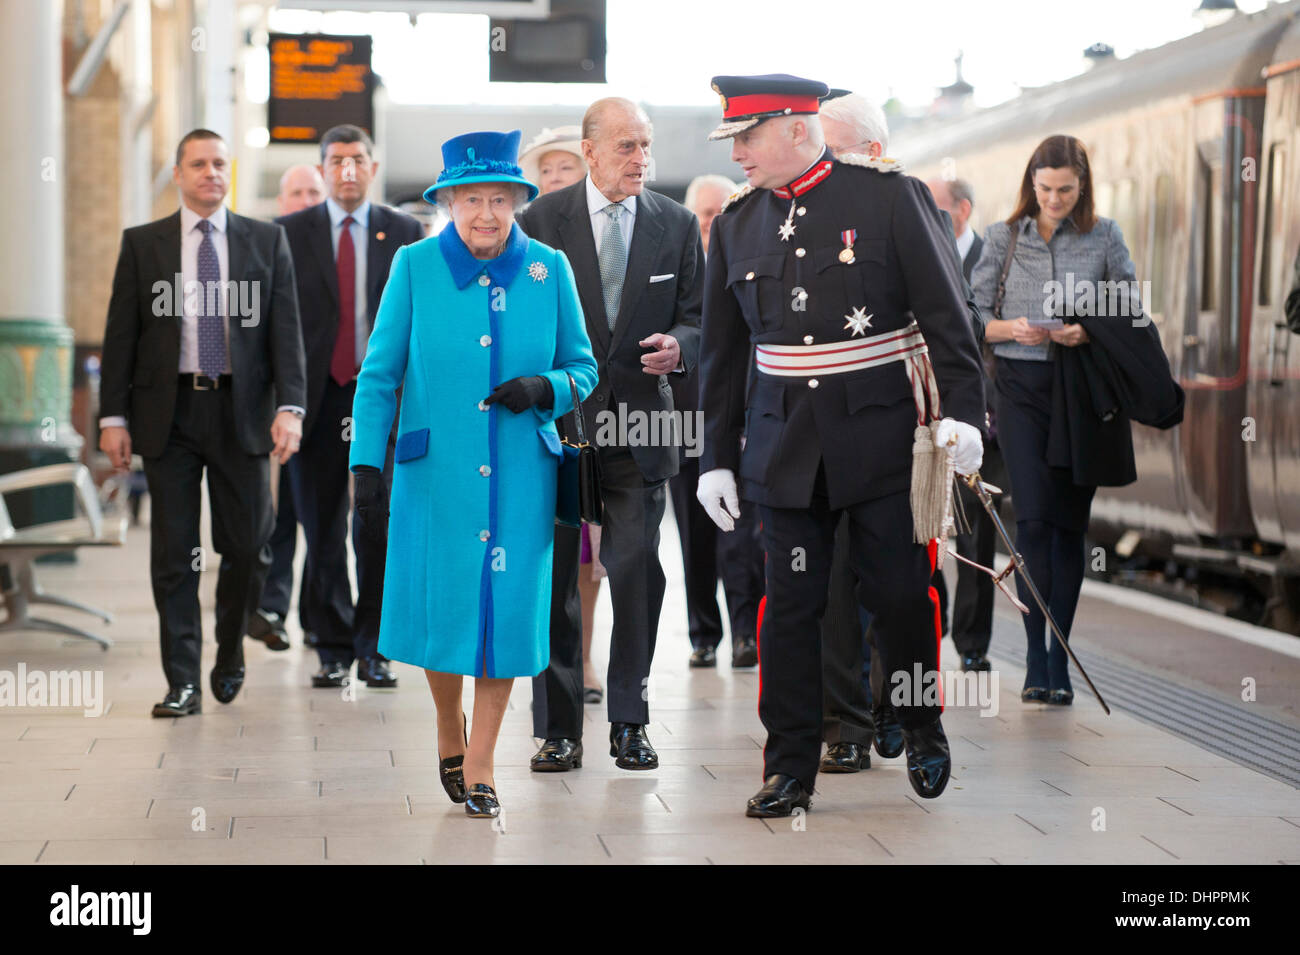 Manchester, UK. 14th November, 2013. Queen Elizabeth II and Prince Philip, Duke of Edinburgh arrive at Piccadilly Train Station in Manchester, greeted by Mr Warren J. Smith, The Lord-Lieutenant of Greater Manchester, ahead of their engagement to officially open the new 'Noma' Co-Op building in the city. Credit:  Russell Hart/Alamy Live News (Editorial use only). - Stock Image